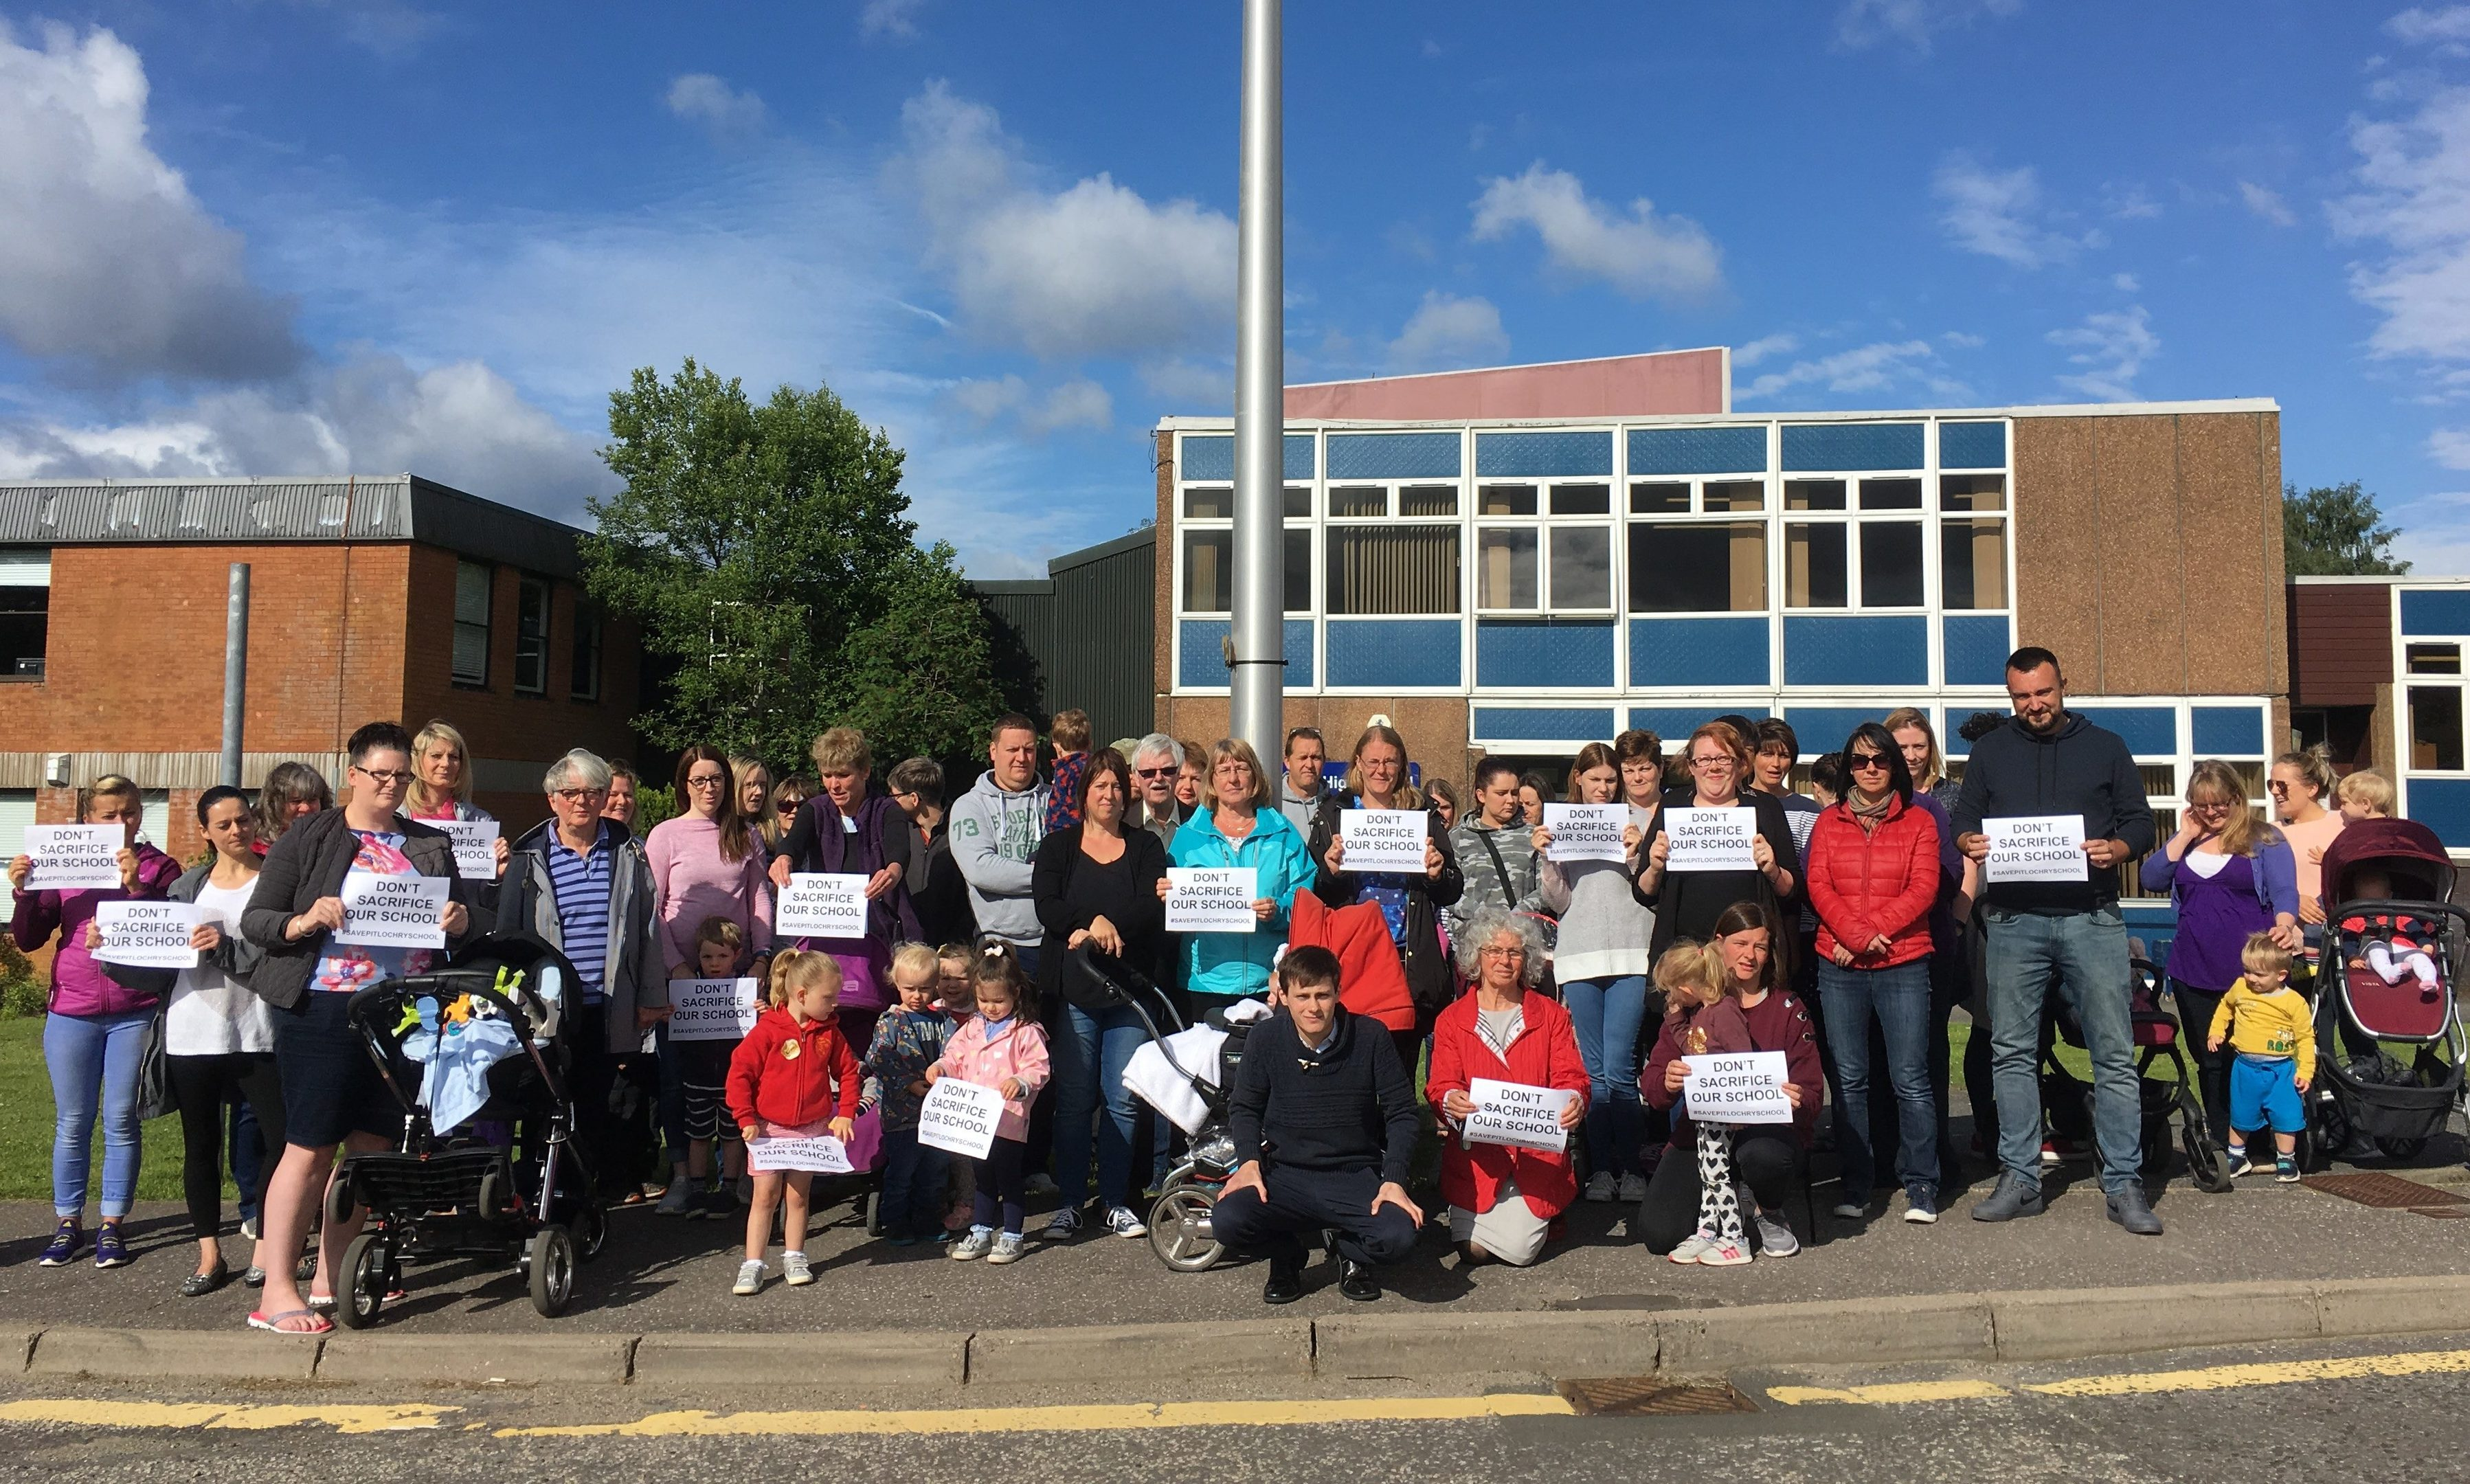 Protesting parents gather at Pitlochry School.